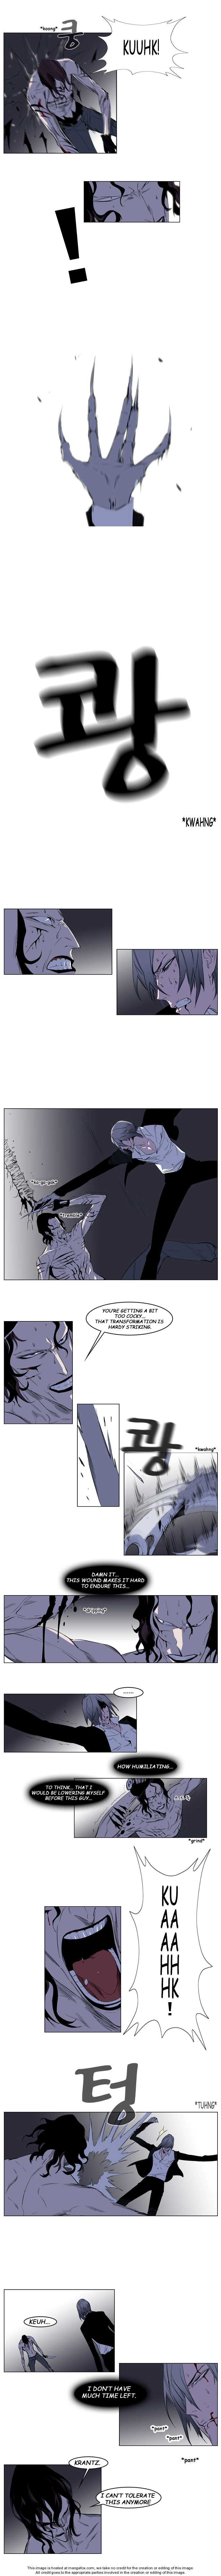 Noblesse 129 Page 2